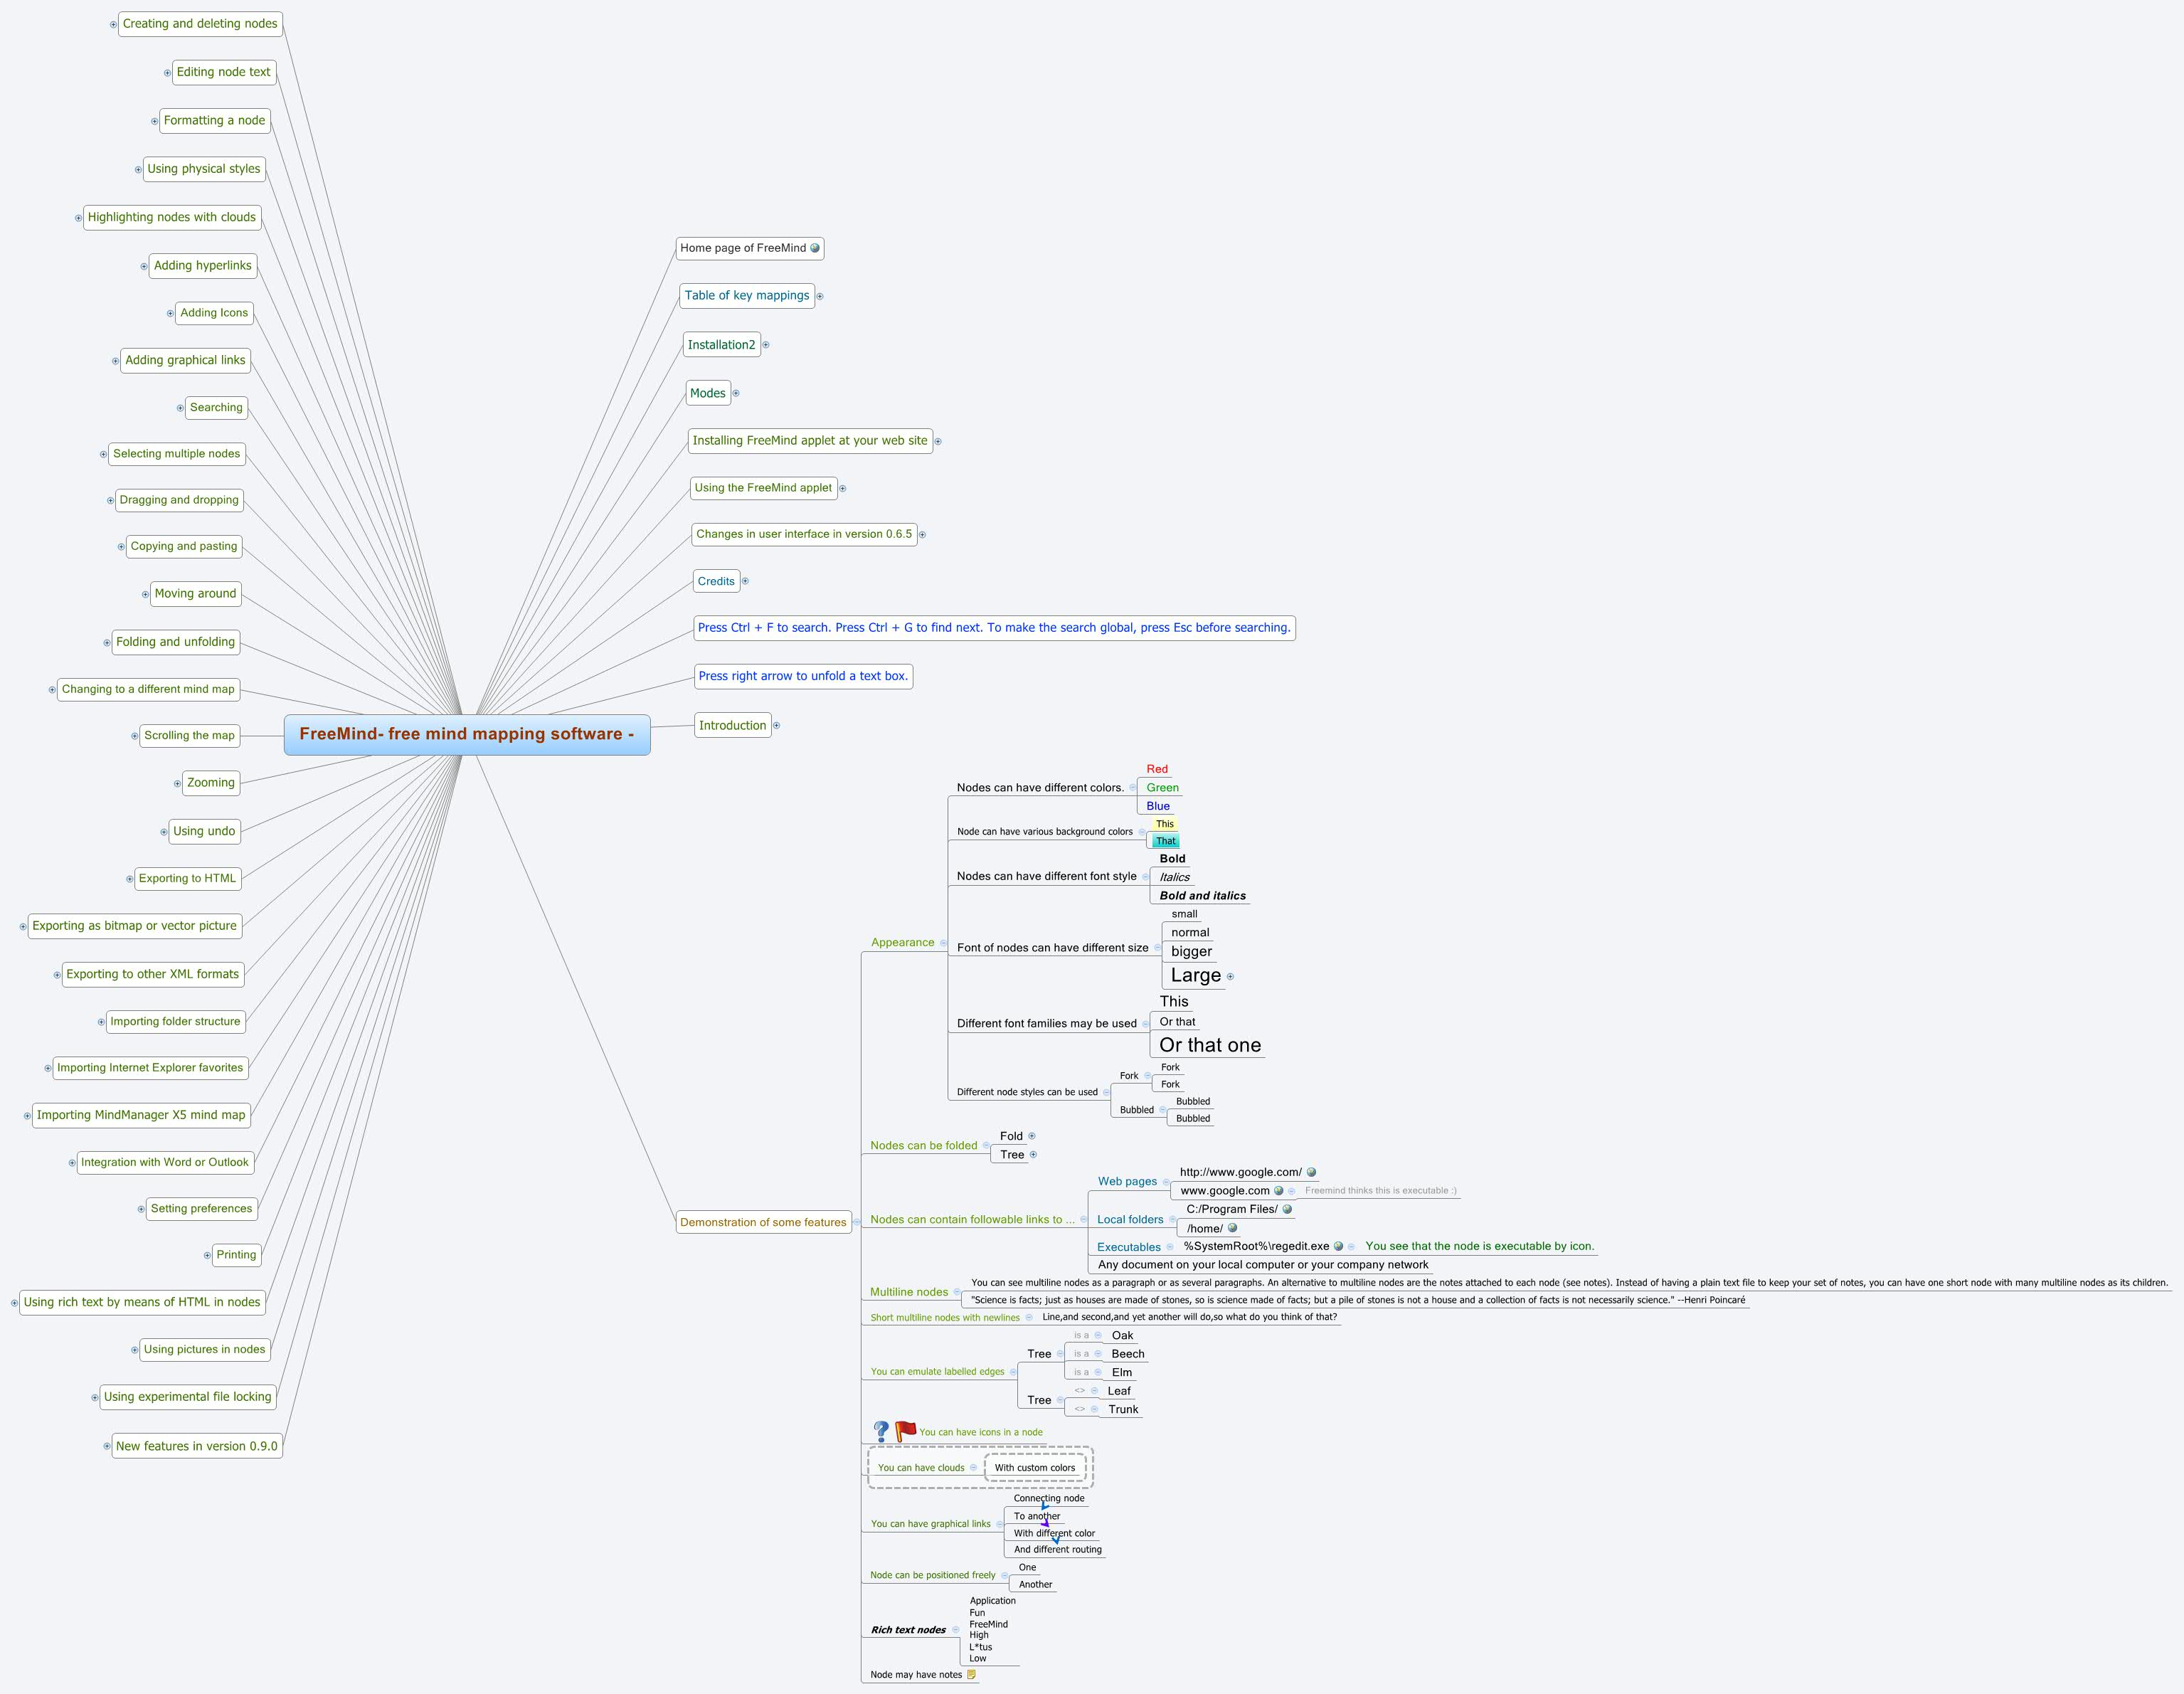 [Image: freemind-free-mind-mapping-software-cccw...463135.jpg]